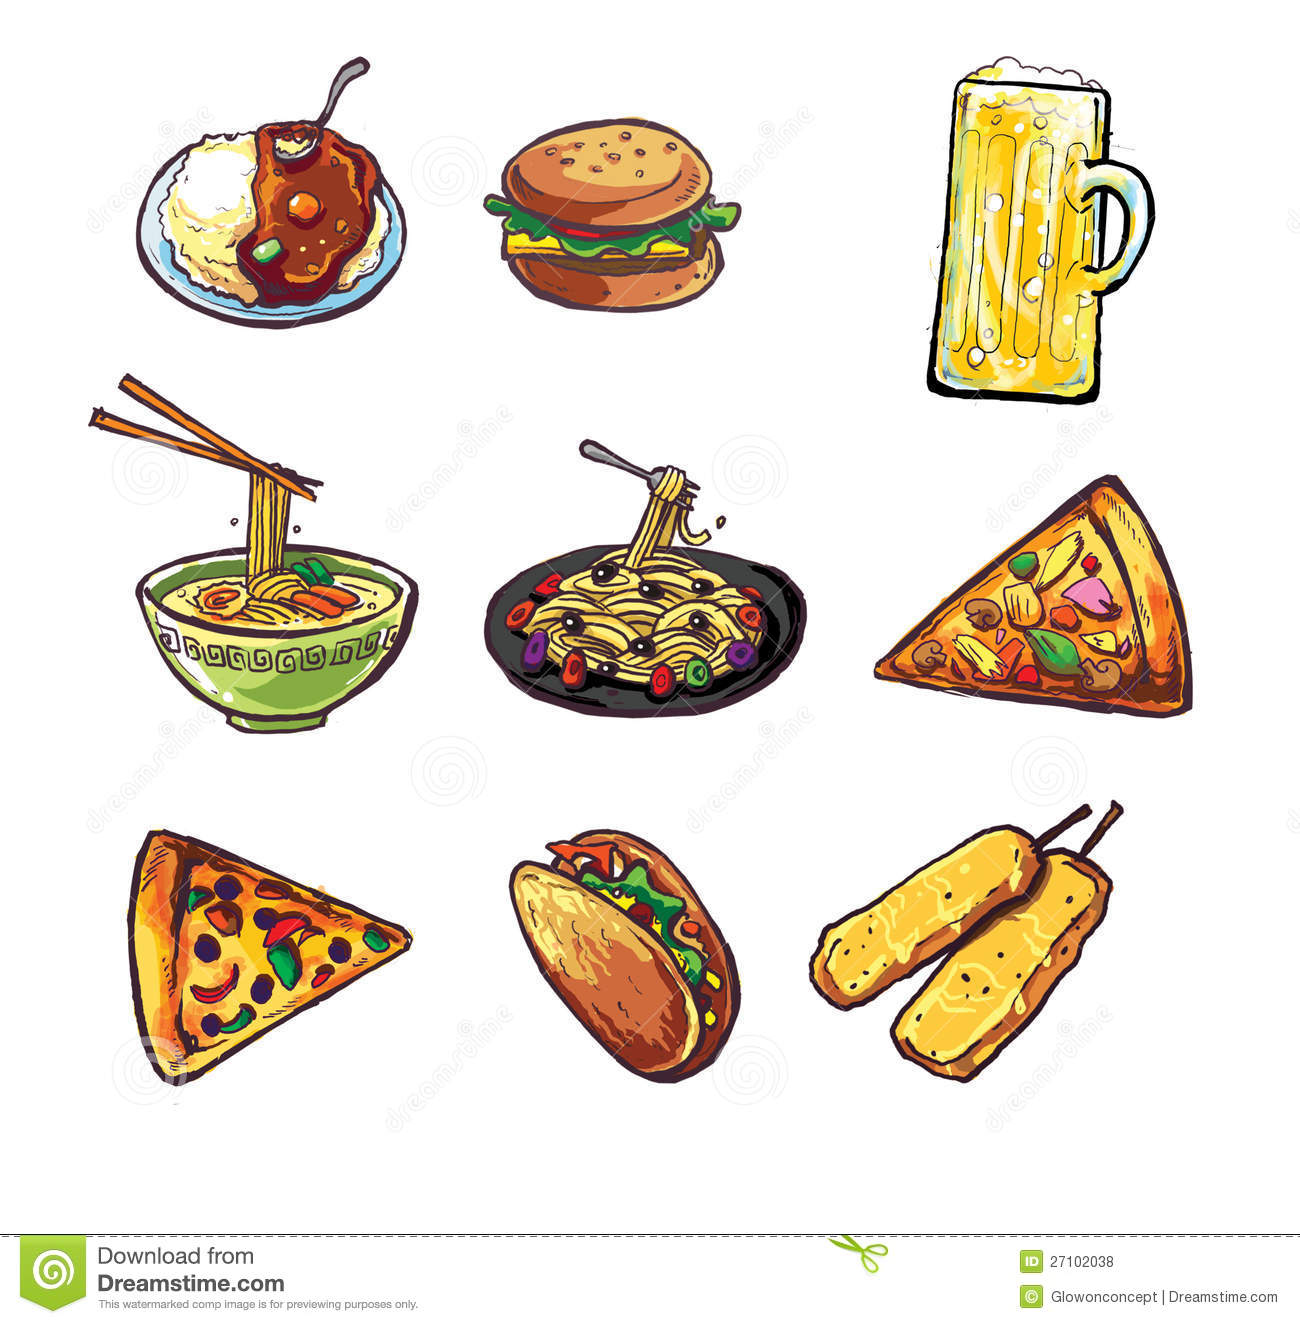 International and different kind of food illustration can use as